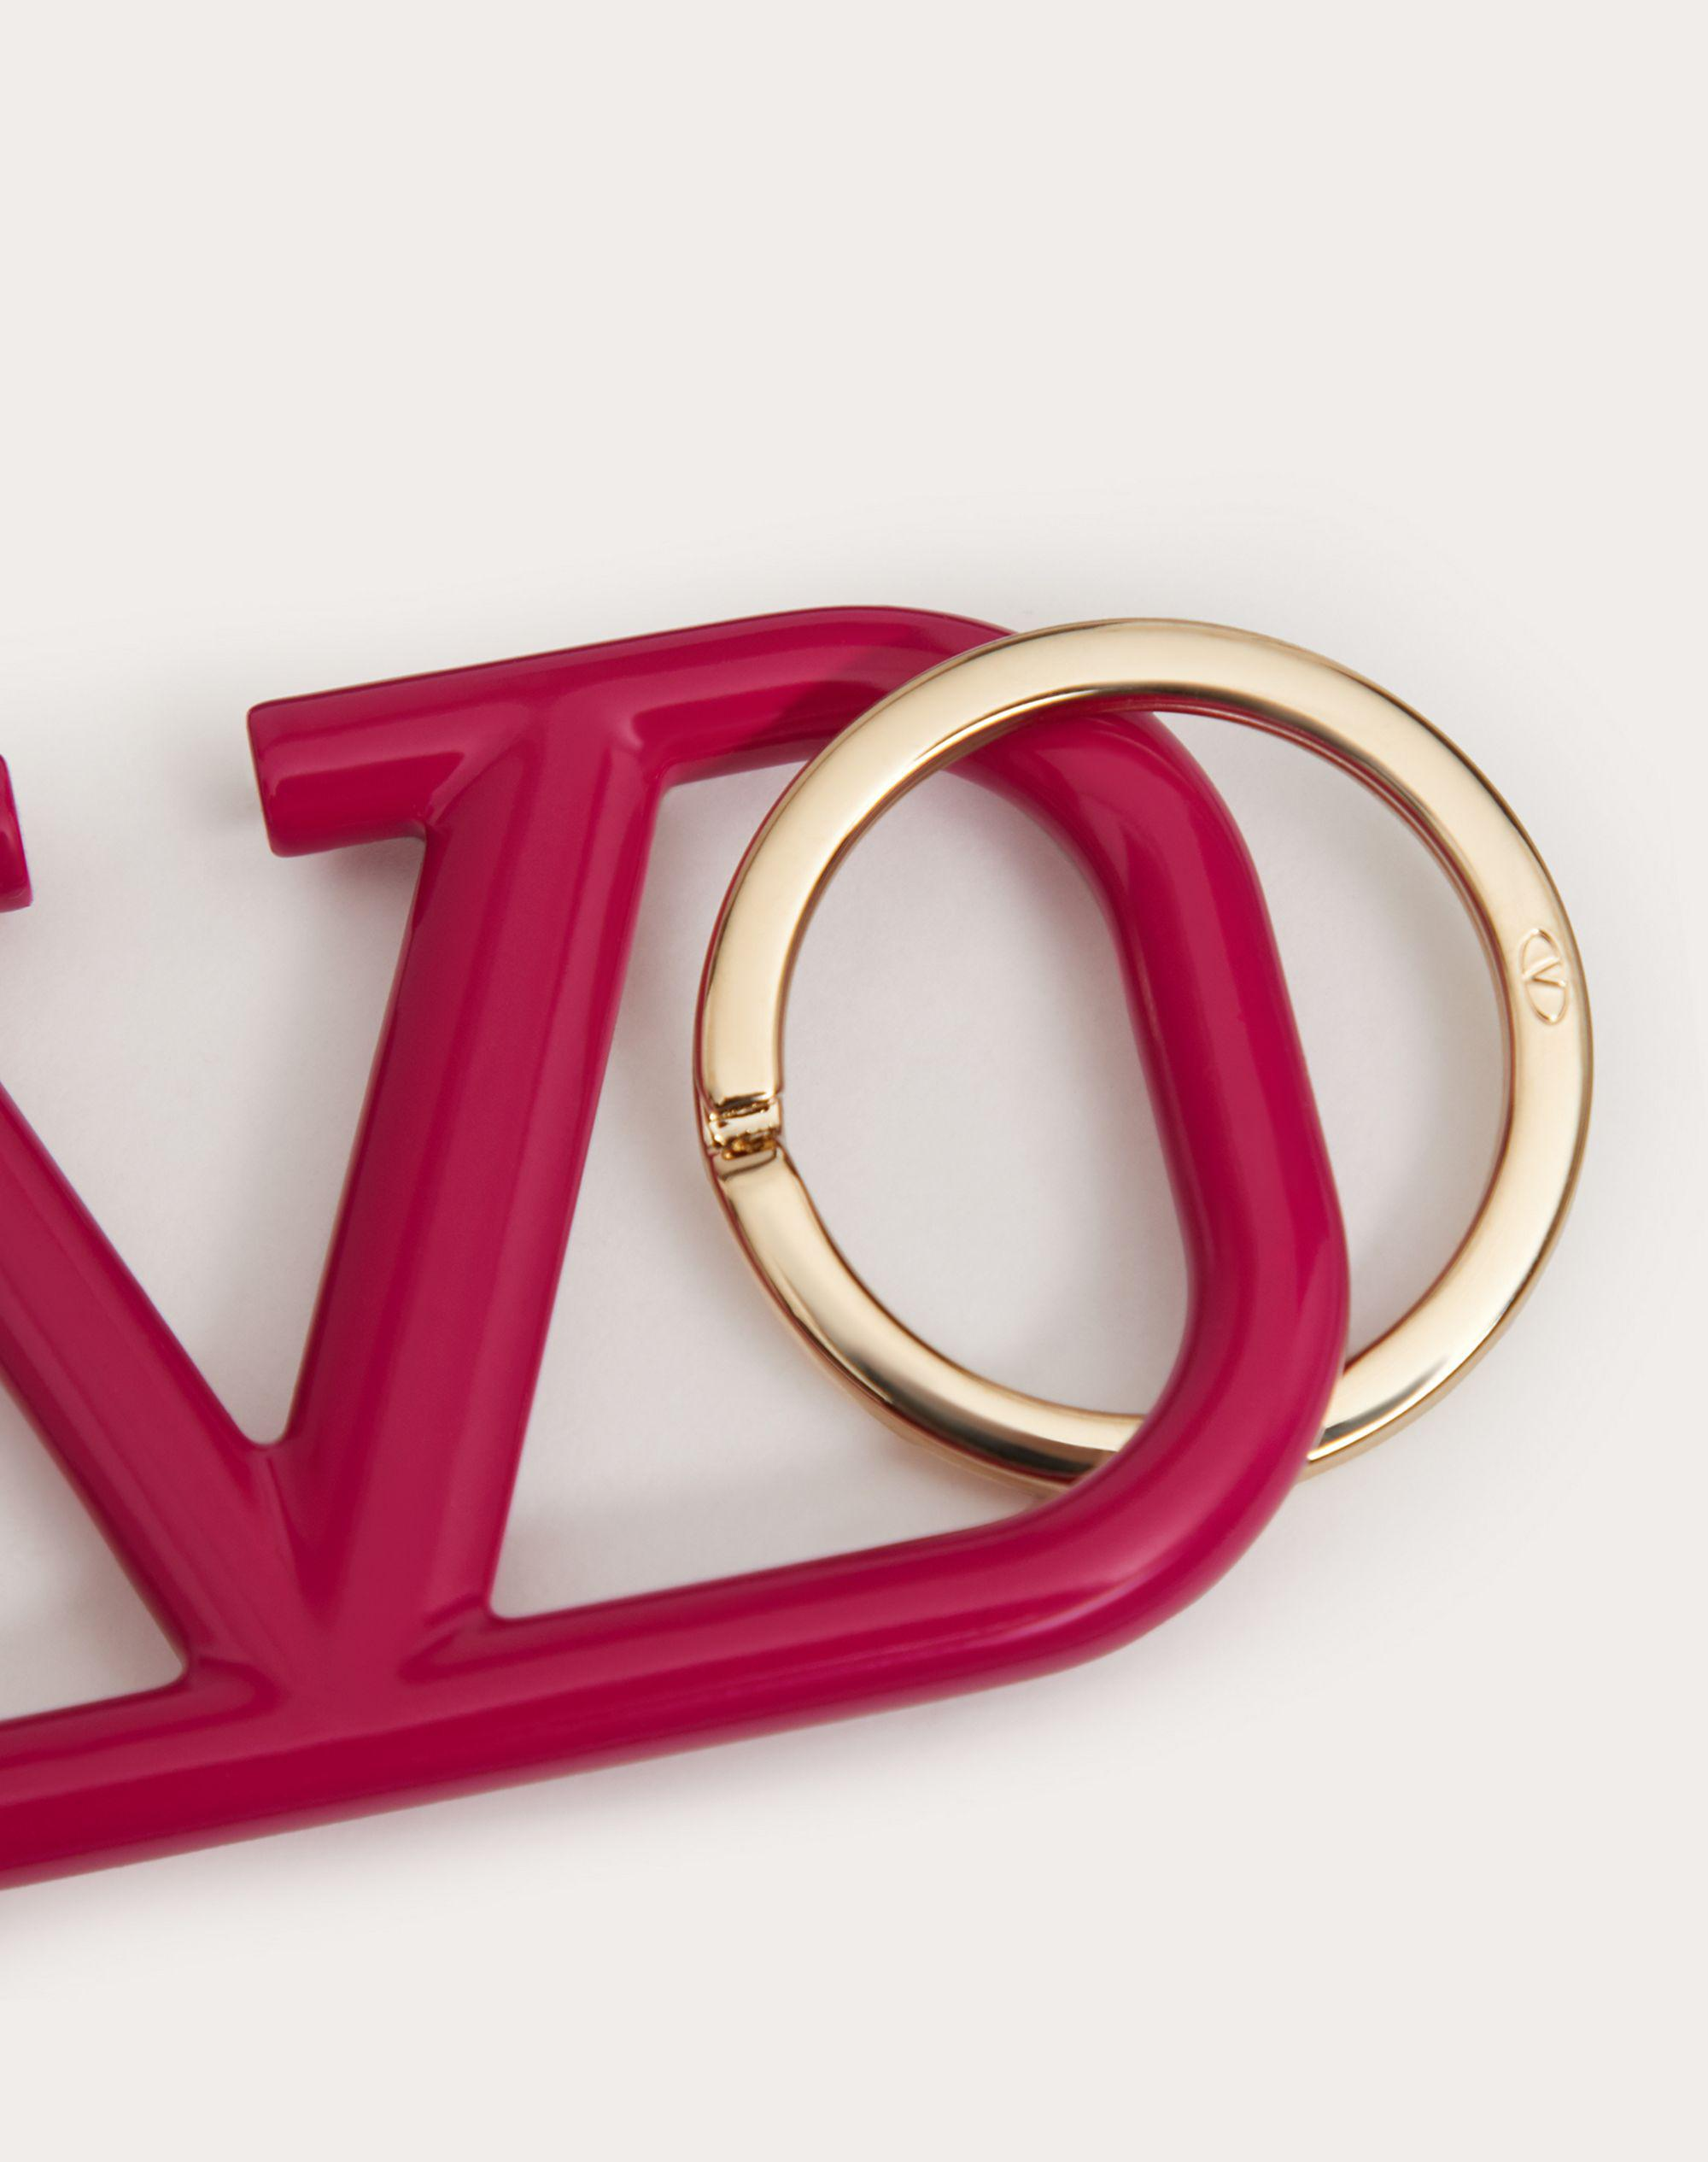 VLOGO SIGNATURE KEYCHAIN IN LACQUERED METAL 1